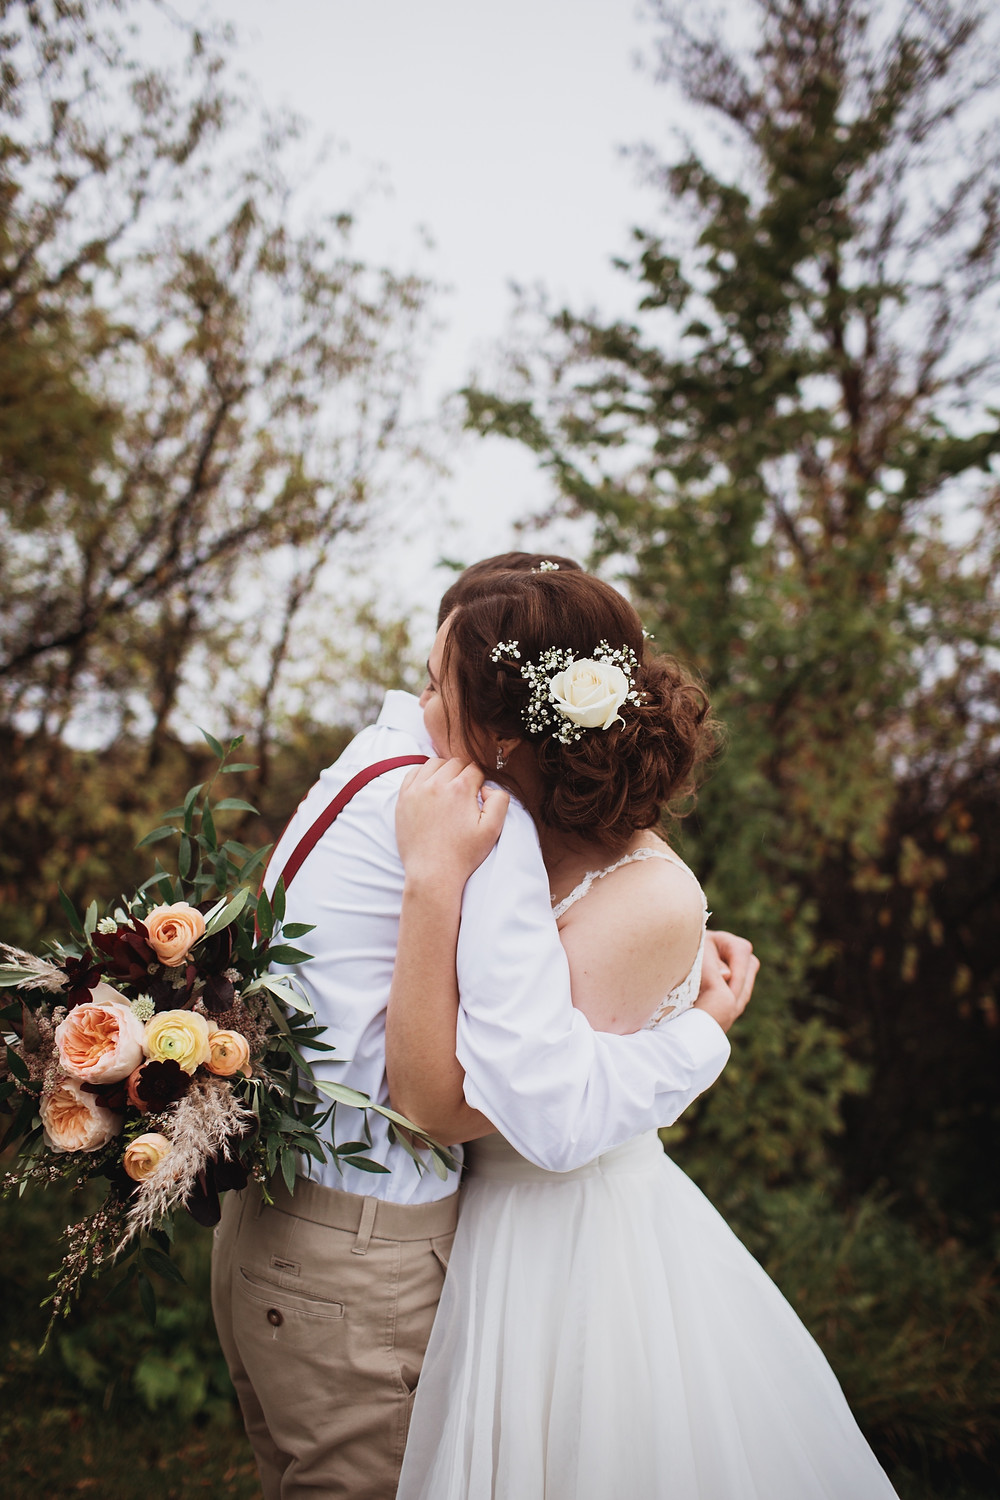 Bride and groom embrace.